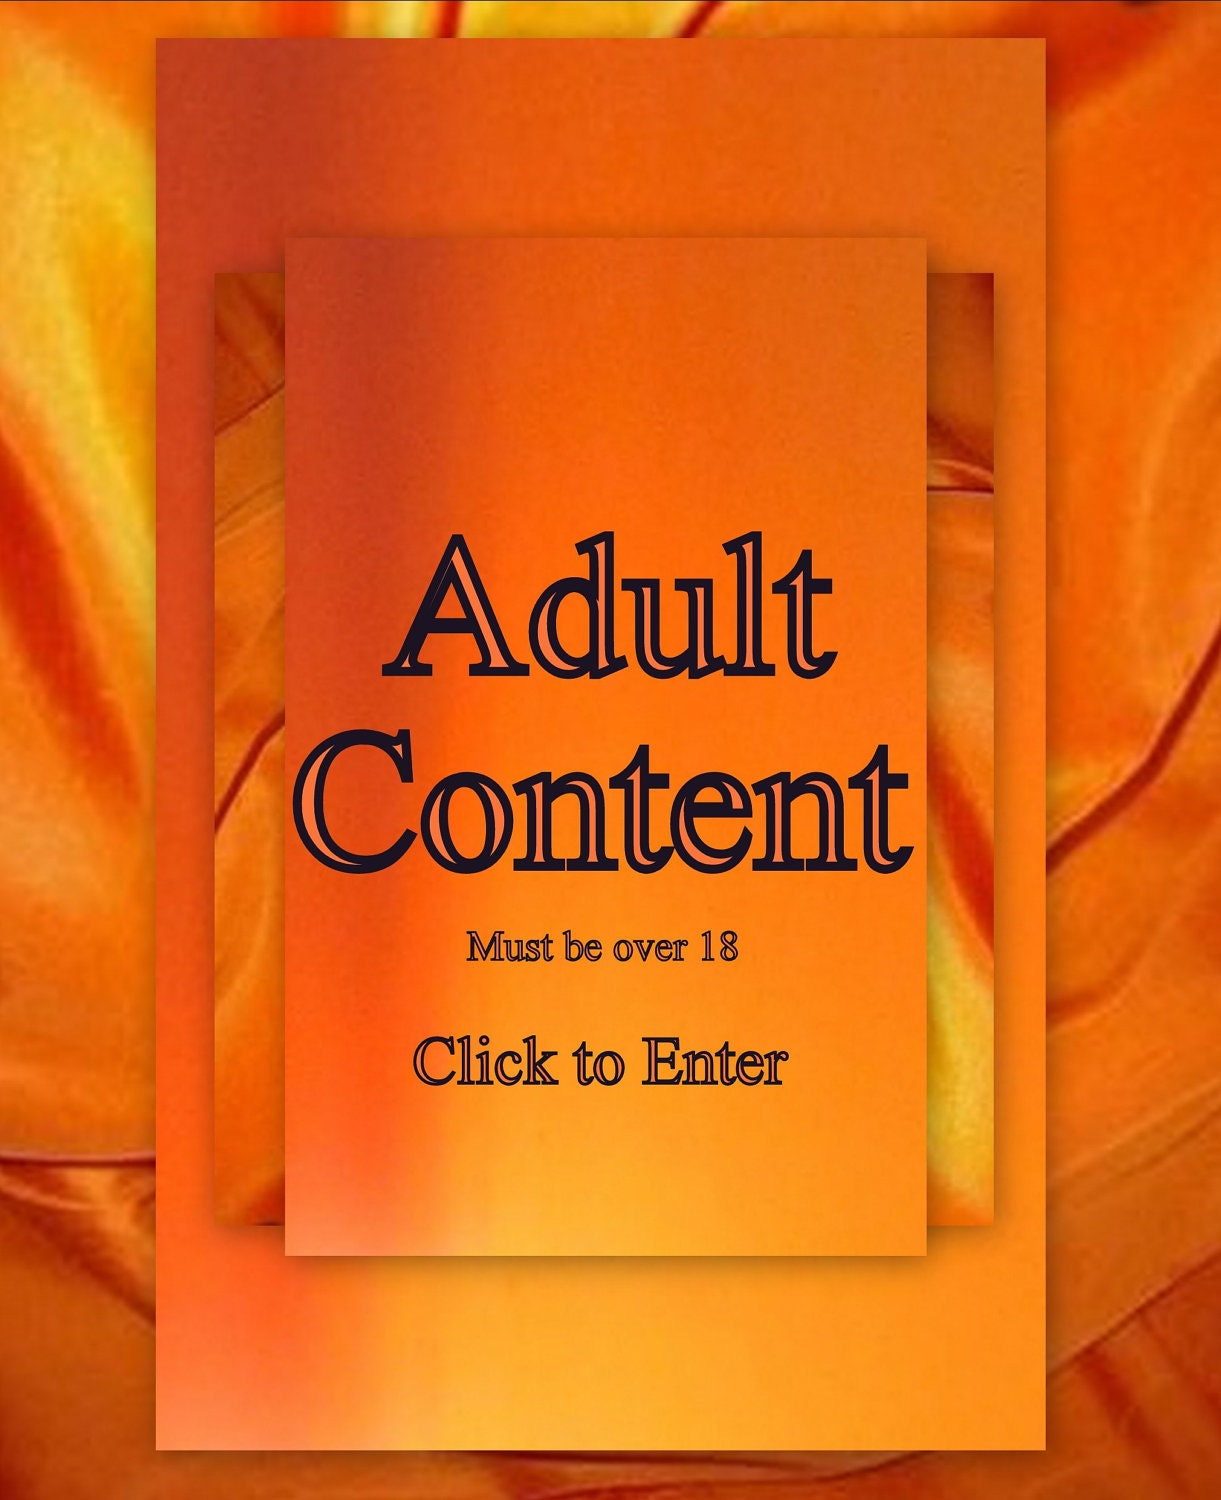 Erotica Pleasure Bar Mature Content. From GoldenCoastDesigns